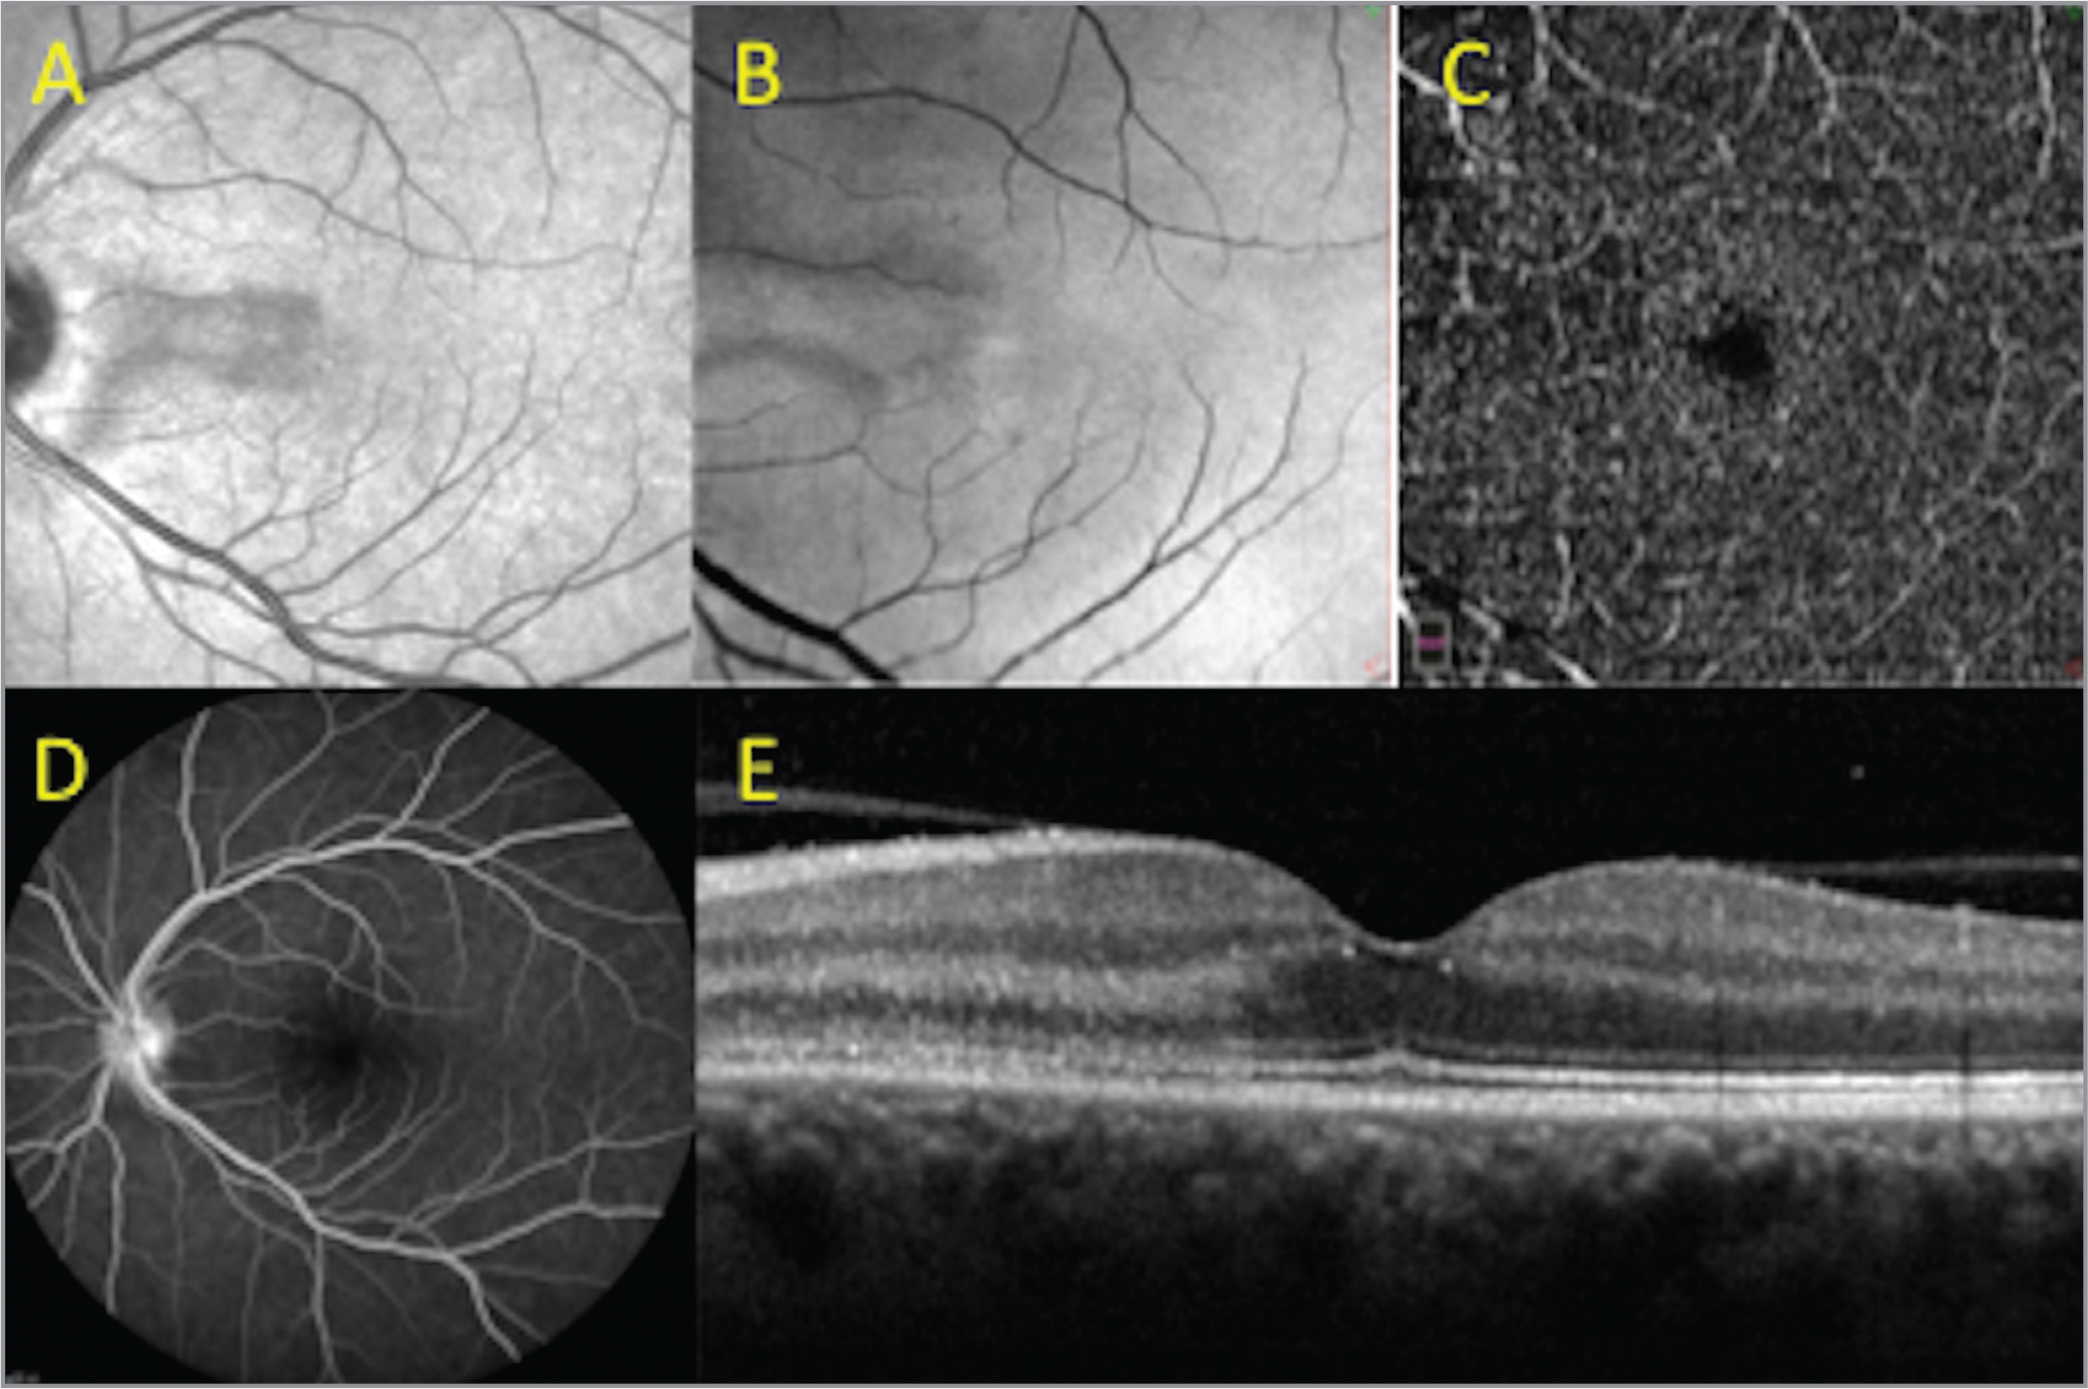 Left eye (OS) of patient 2 at presentation showing a typical hypointense lesion pointing toward the fovea on near infrared reflectance (NIR) (A). En face optical coherence tomography (OCT) segmented at the level of the outer retina showed a hyperreflective paracentral lesion corresponding with NIR findings (B). OCT angiography, 6 mm × 6 mm, at the level of the deep capillary plexus showed a focal loss of capillary network nasal to the avascular foveal center (C). Fundus fluorescein angiography (FFA) showed only mild left disc hyperfluorescence (D). Spectral-domain OCT showed an hyperreflective area at the level of the outer plexiform layer, outer nuclear layer, and ellipsoid zone with preserved retinal pigment epithelium (E).